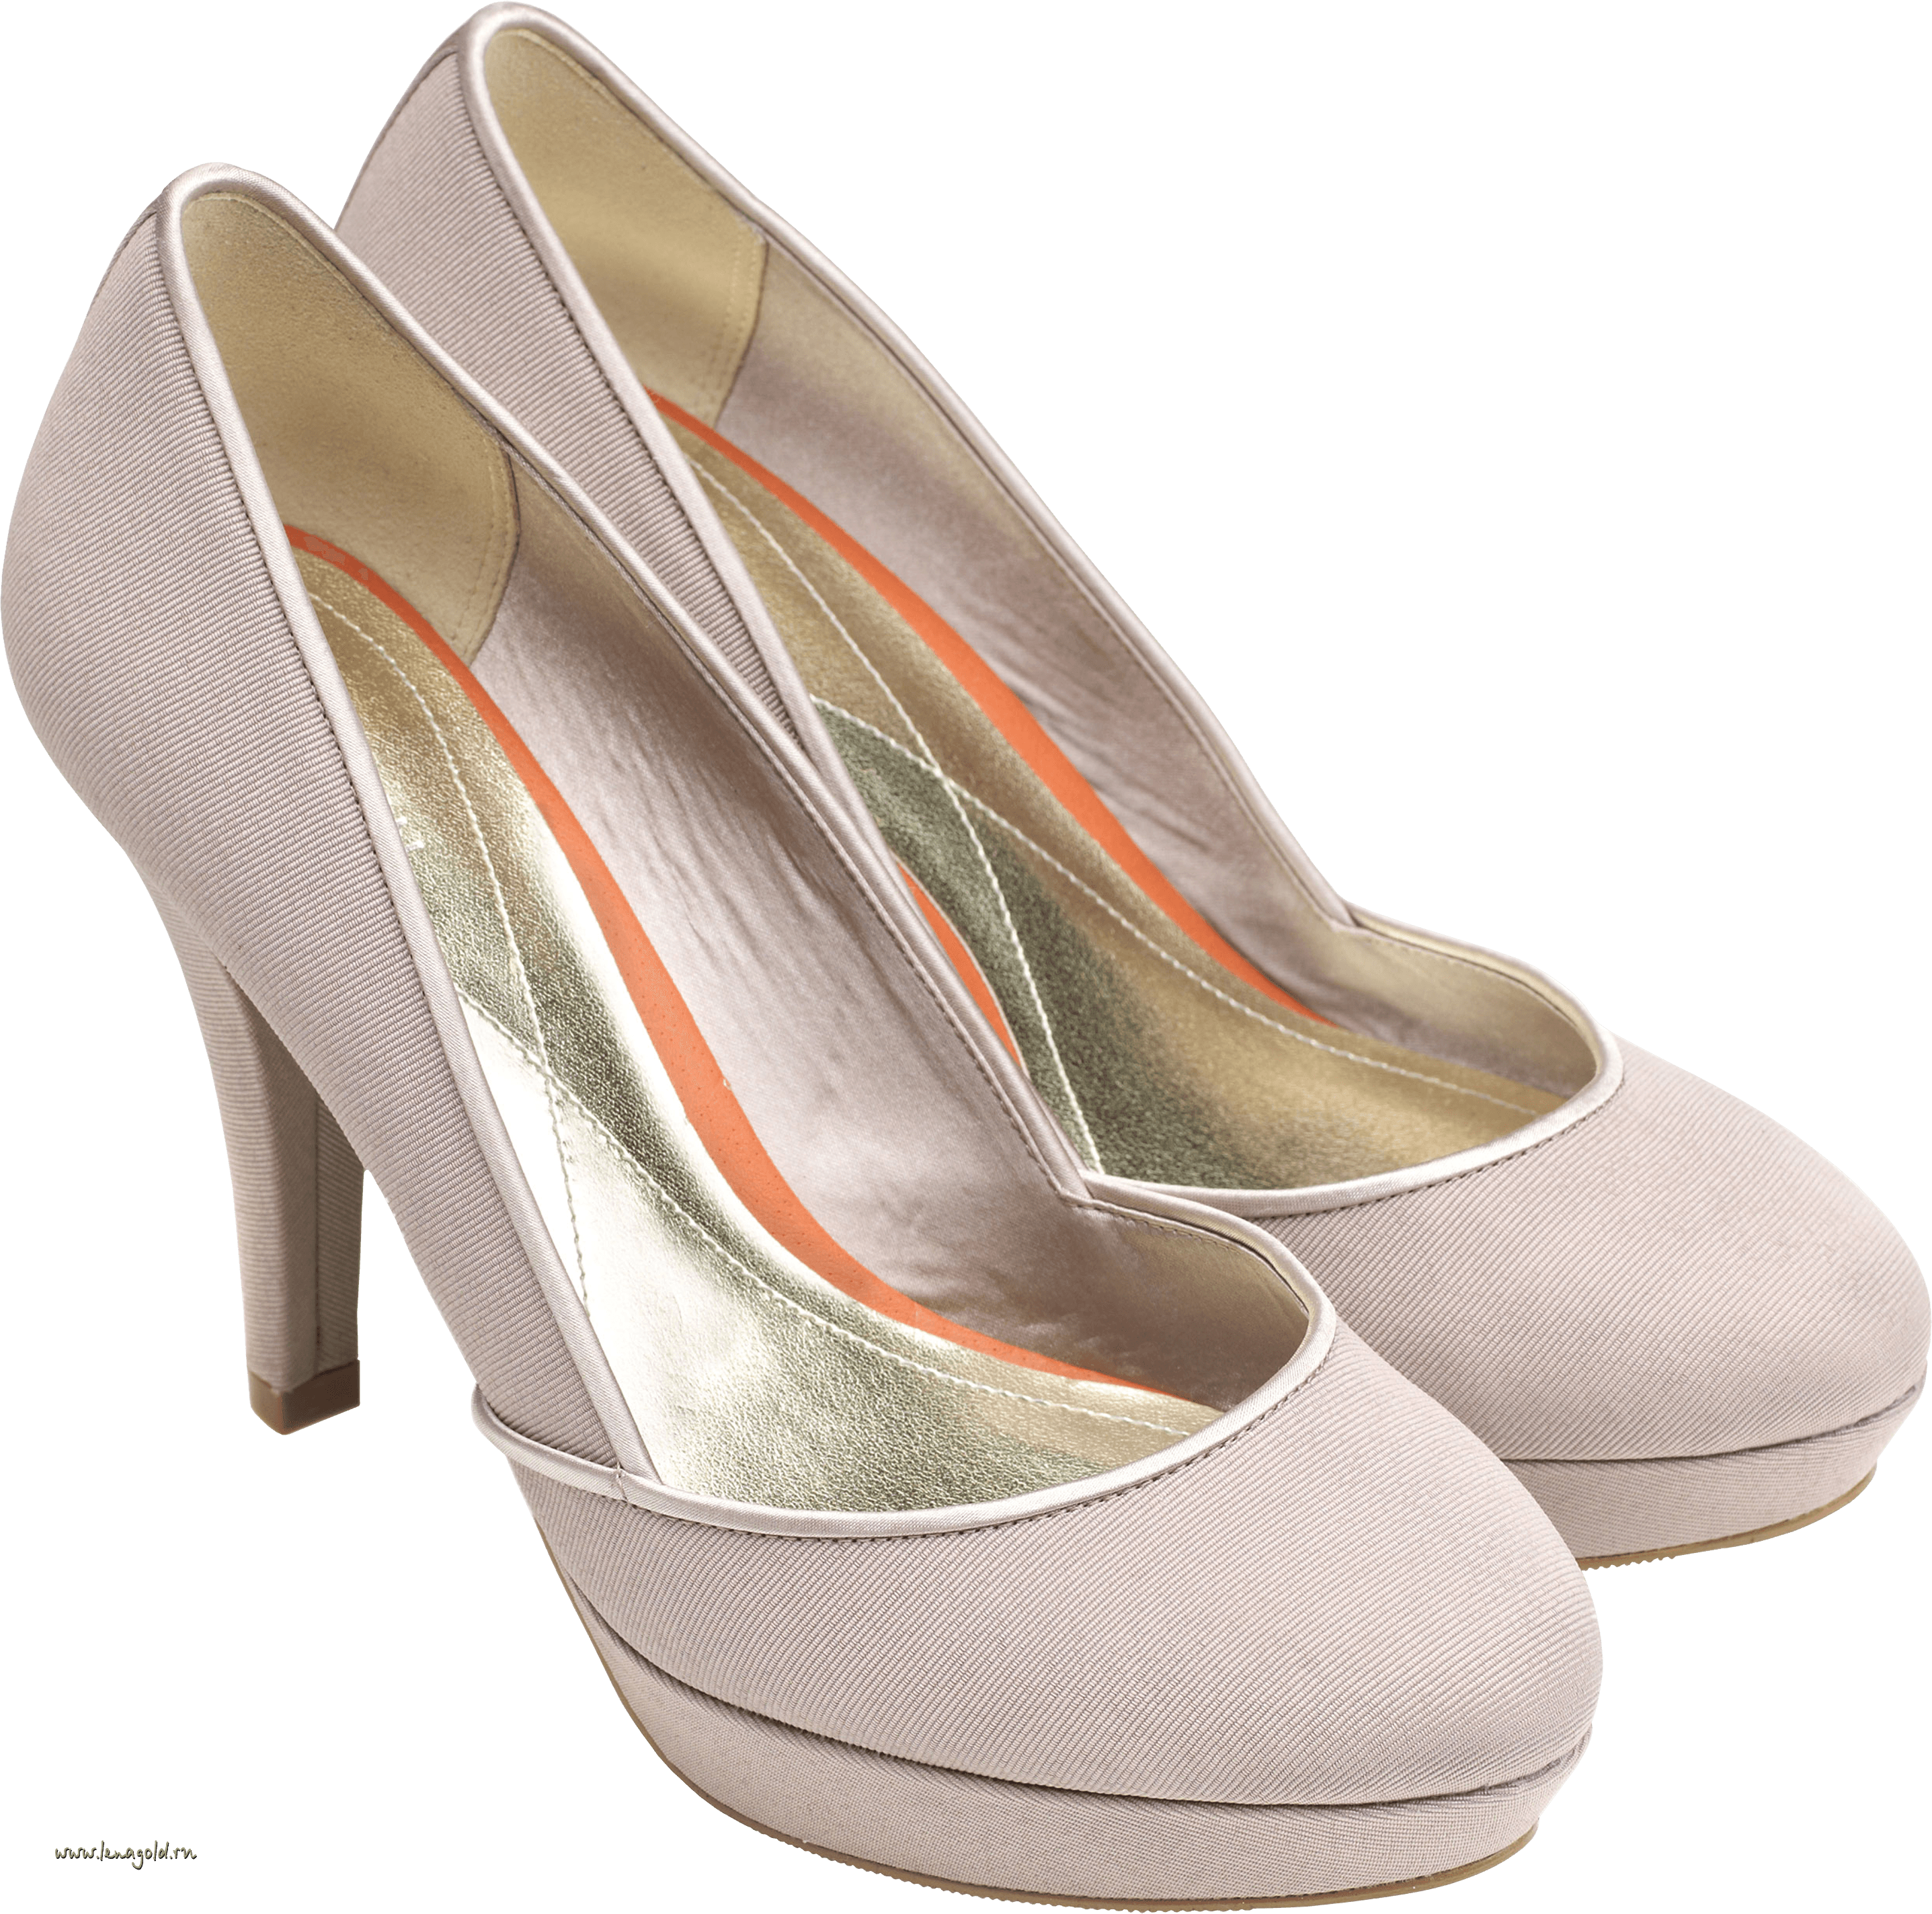 Cinderella shoes png. Download women image hq